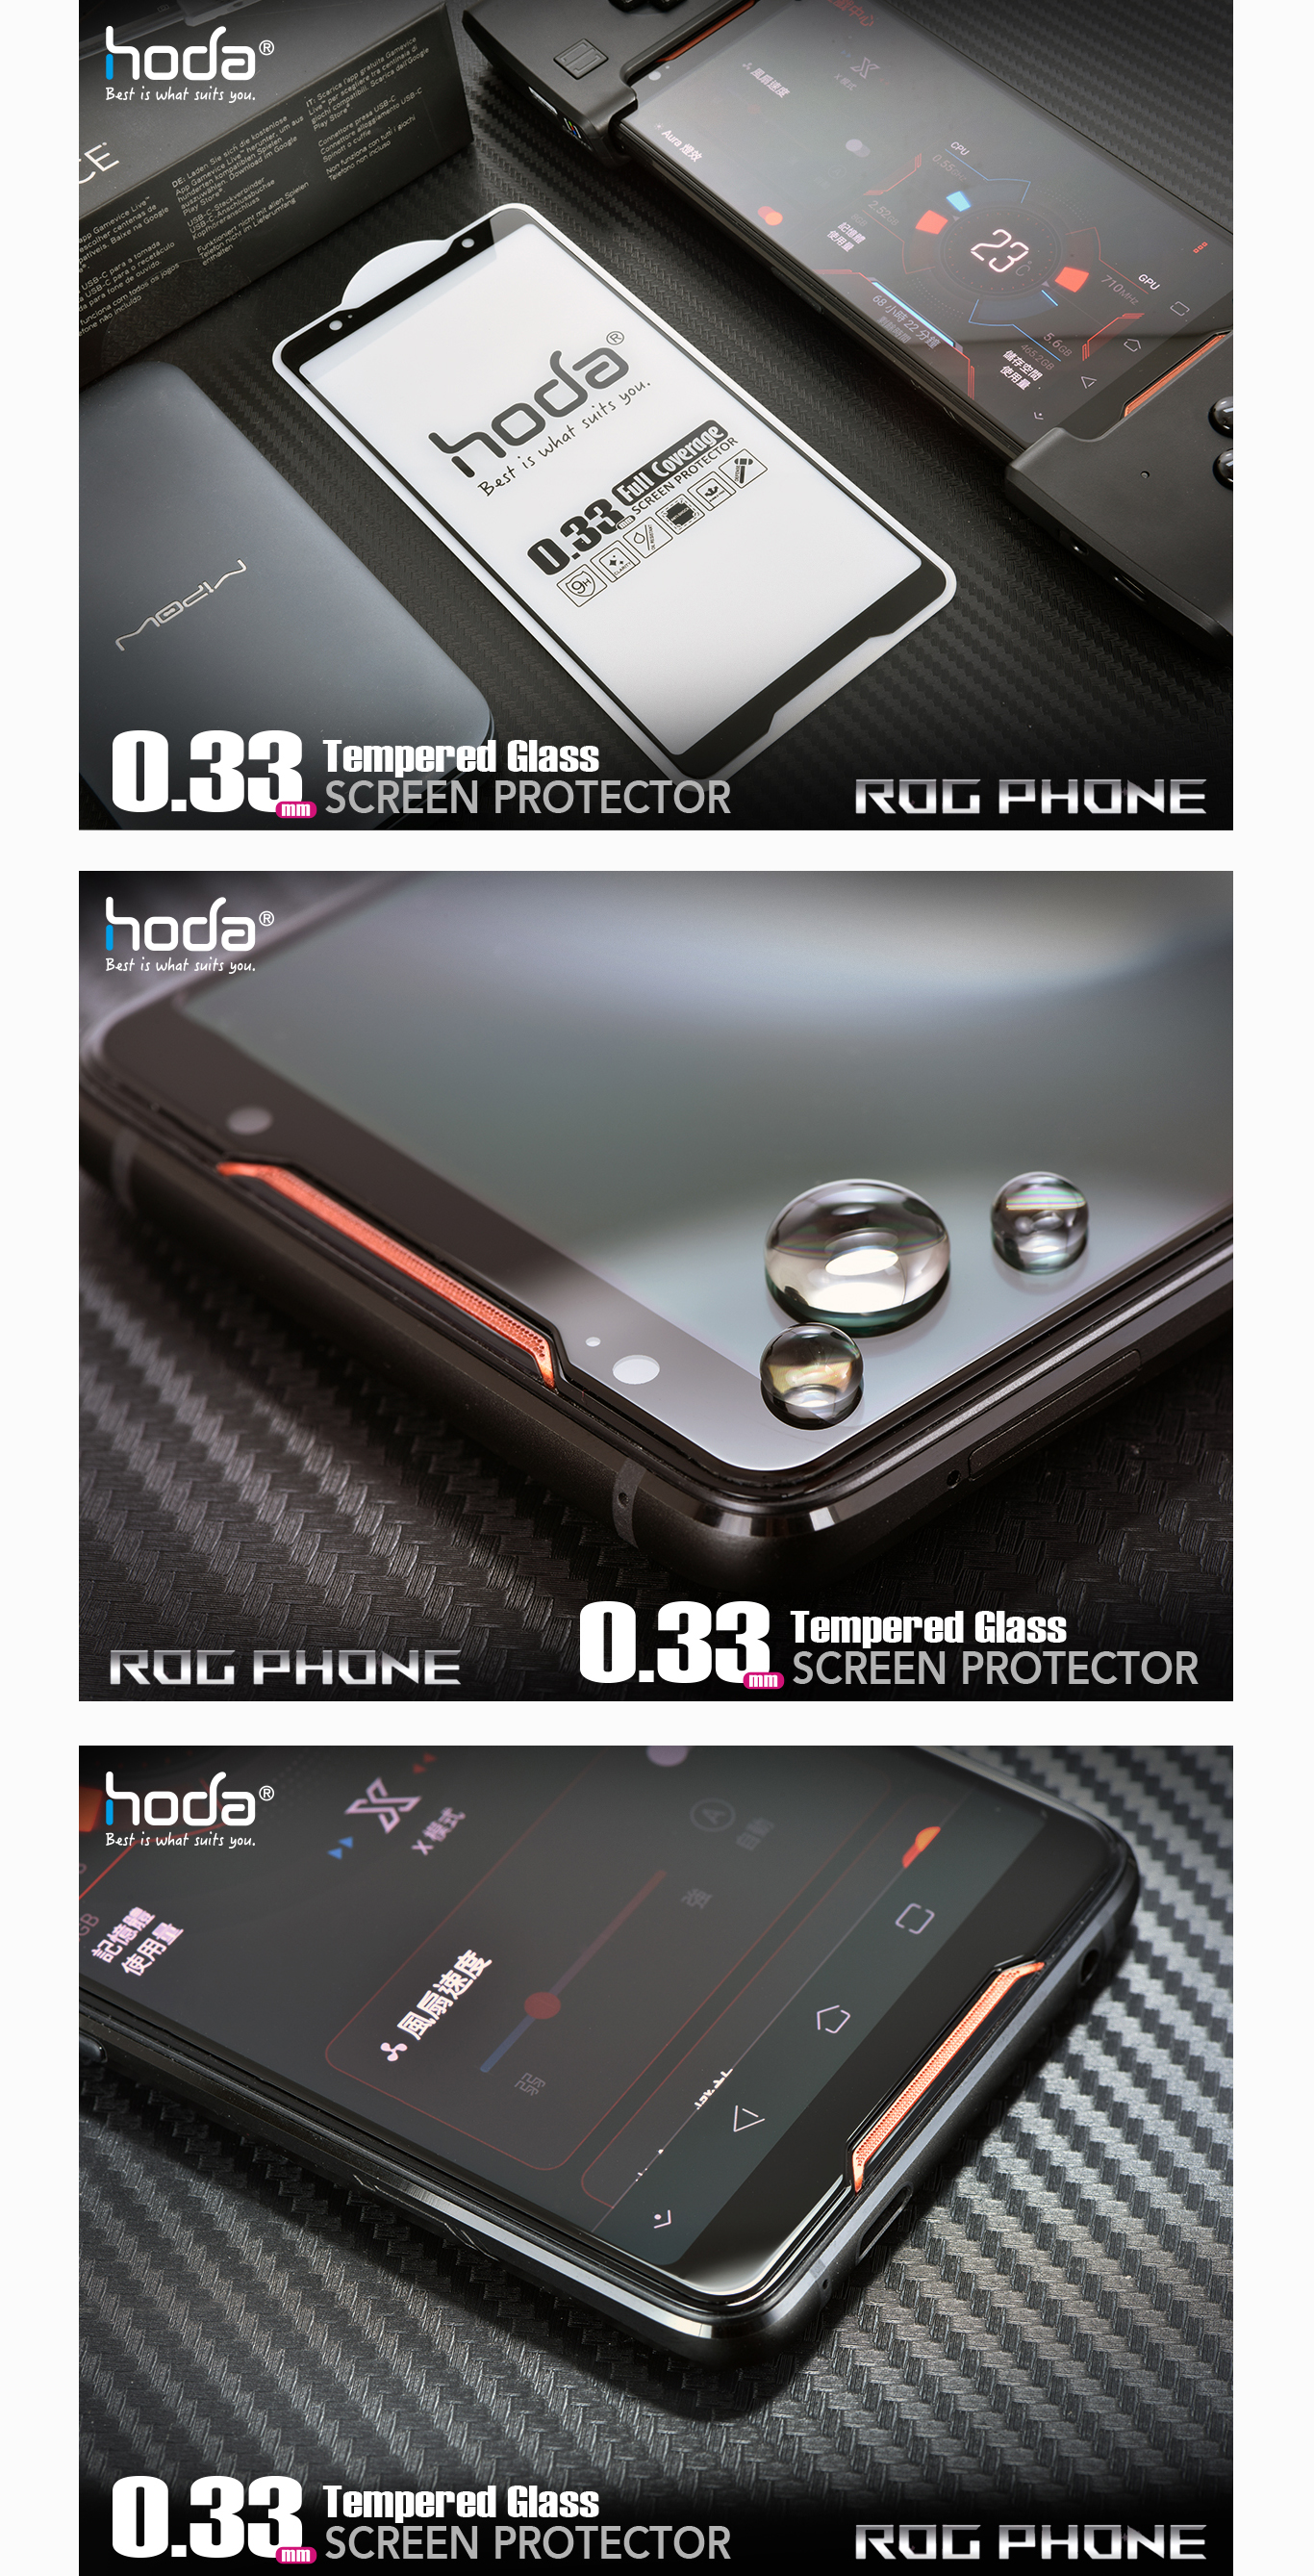 hoda-2.5D-0.33mm-asus-rog-zs600kl-black-malaysia-authorised-retailer-overview